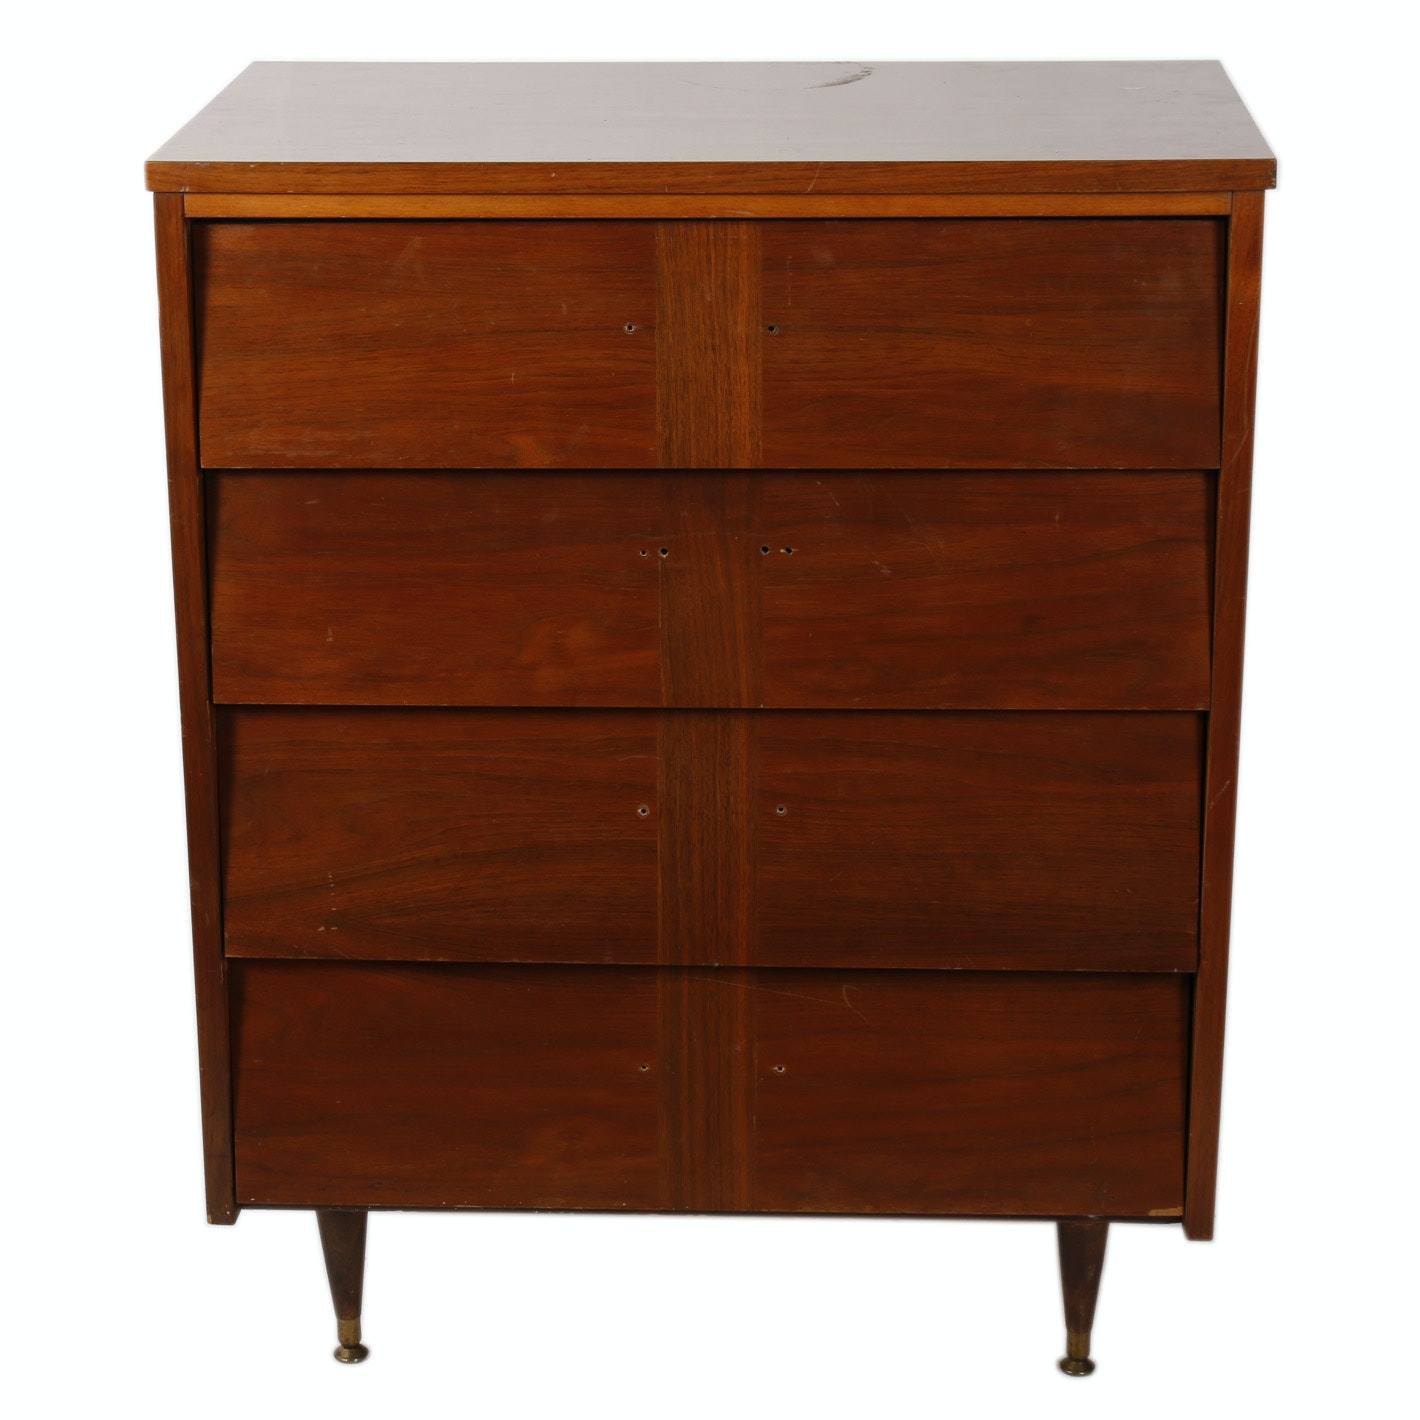 Exceptionnel Mid Century Modern Walnut Chest Of Drawers By Ward Furniture ...